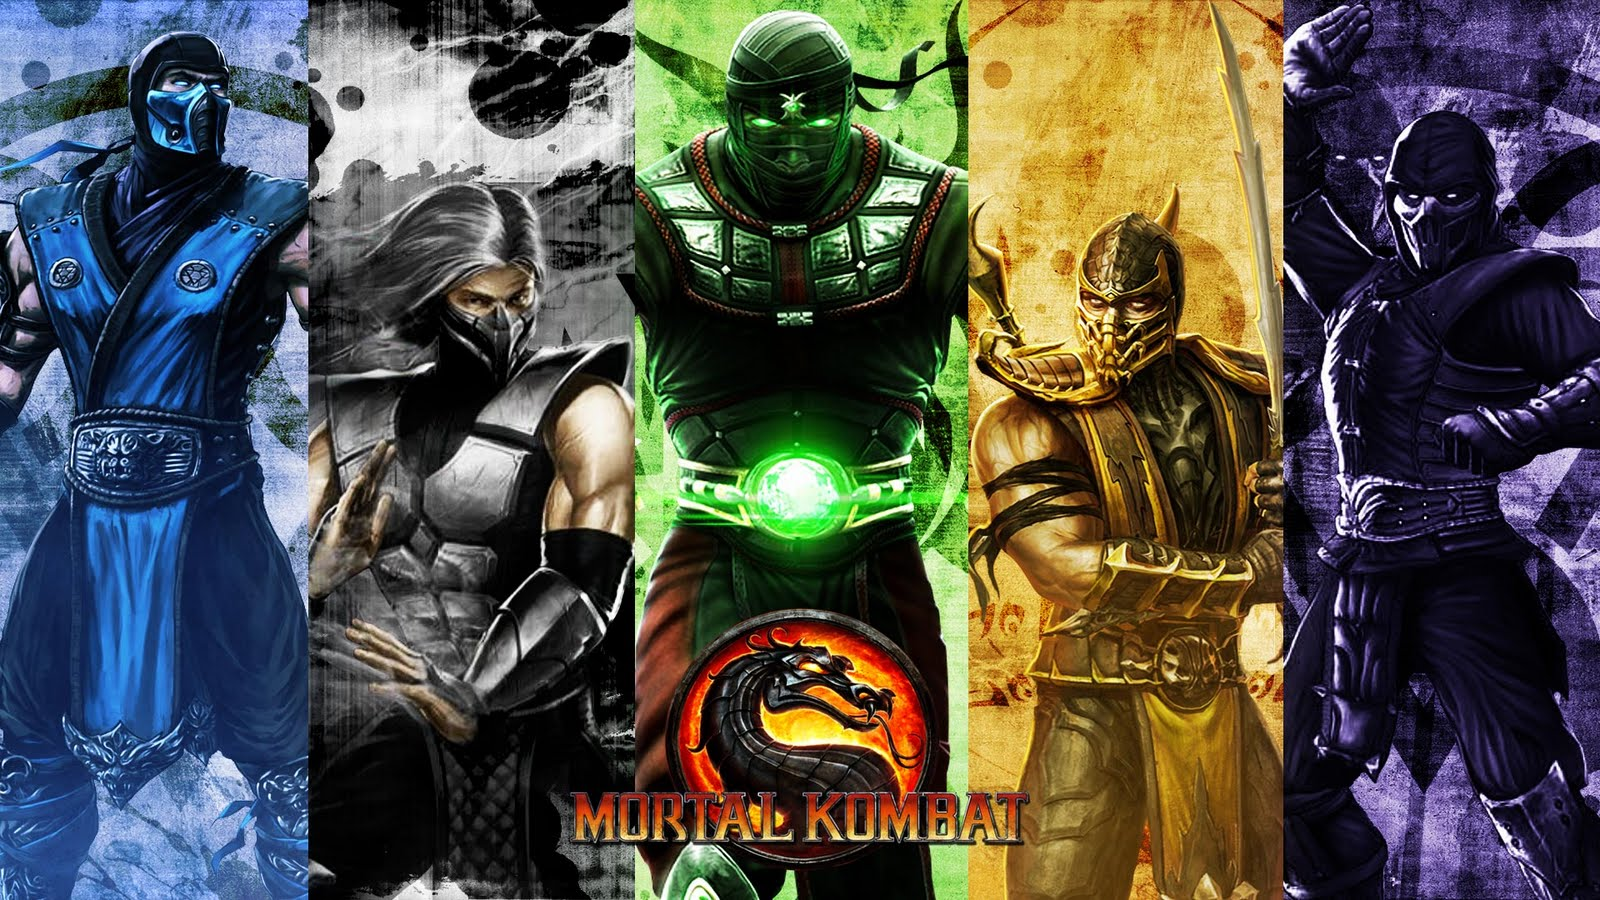 Mortal kombat HD & Widescreen Wallpaper 0.186765331541465